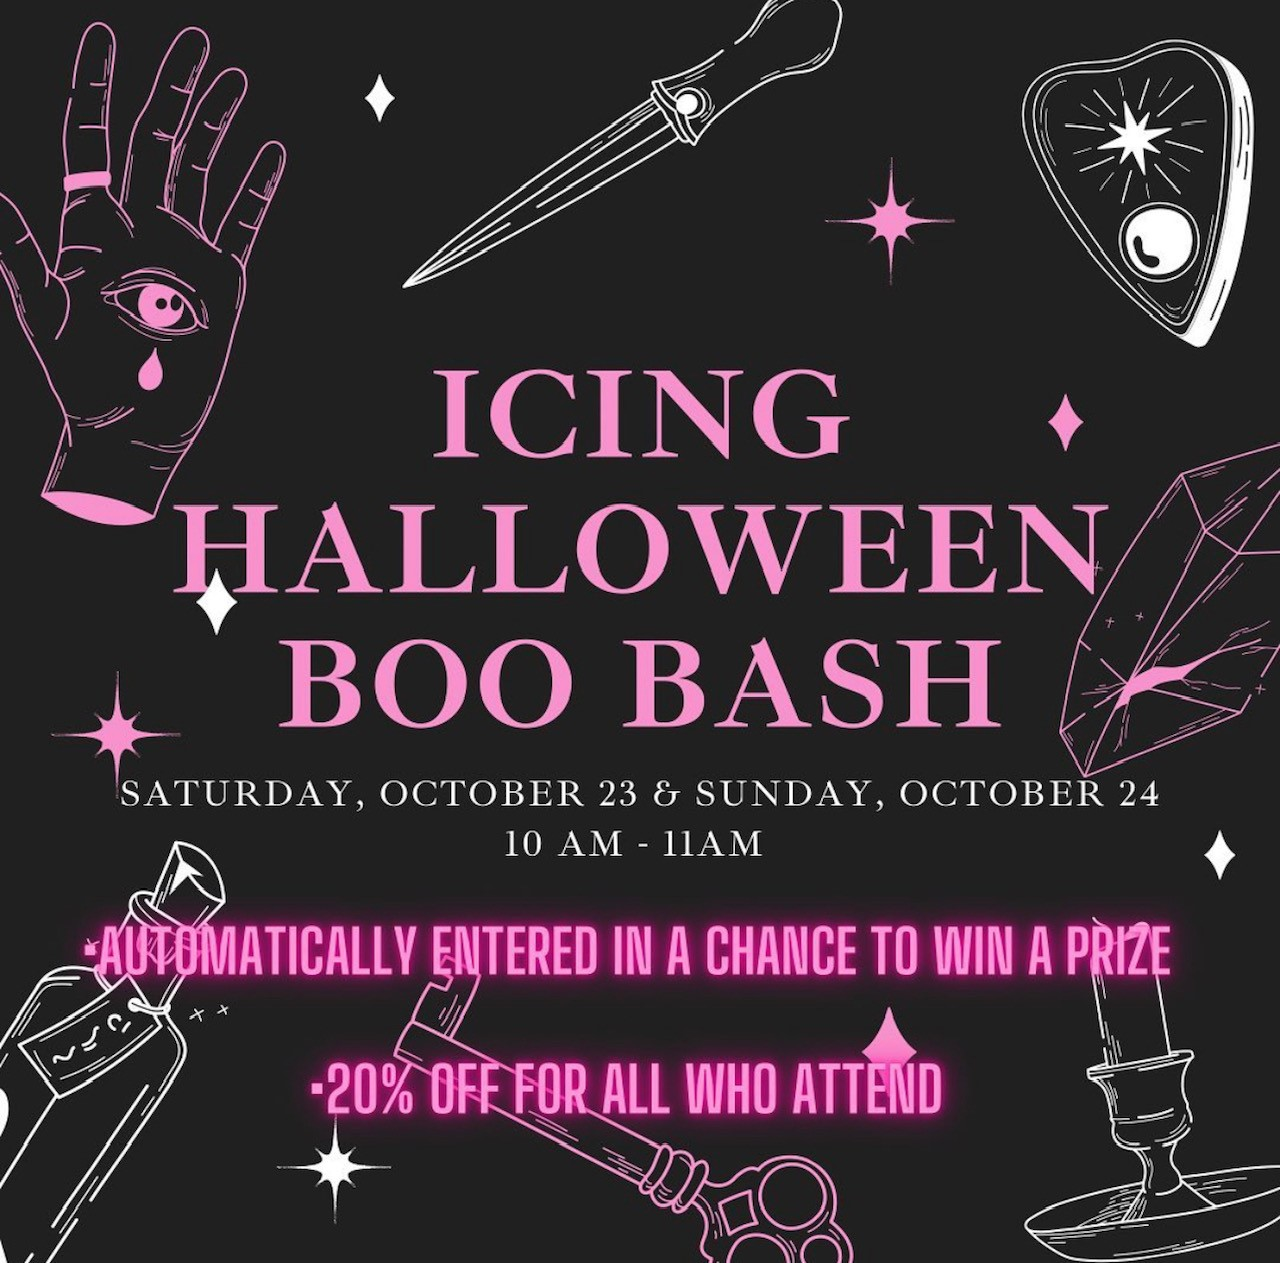 BOO BASH from ICING